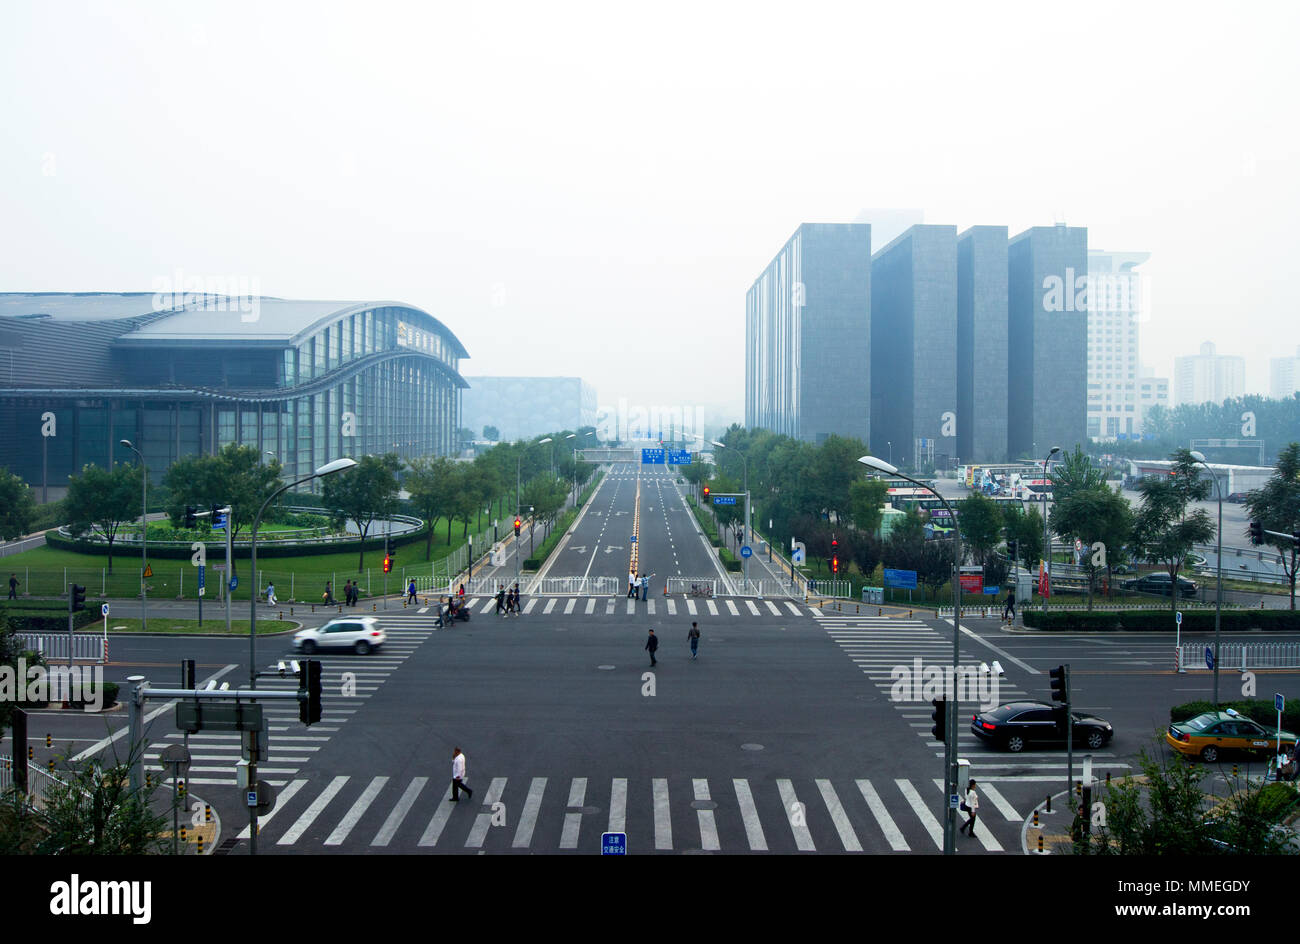 A dull smoggy view from the China National Convention Center in Beijing, China, showing at left the Beijing National Indoor Stadium. - Stock Image